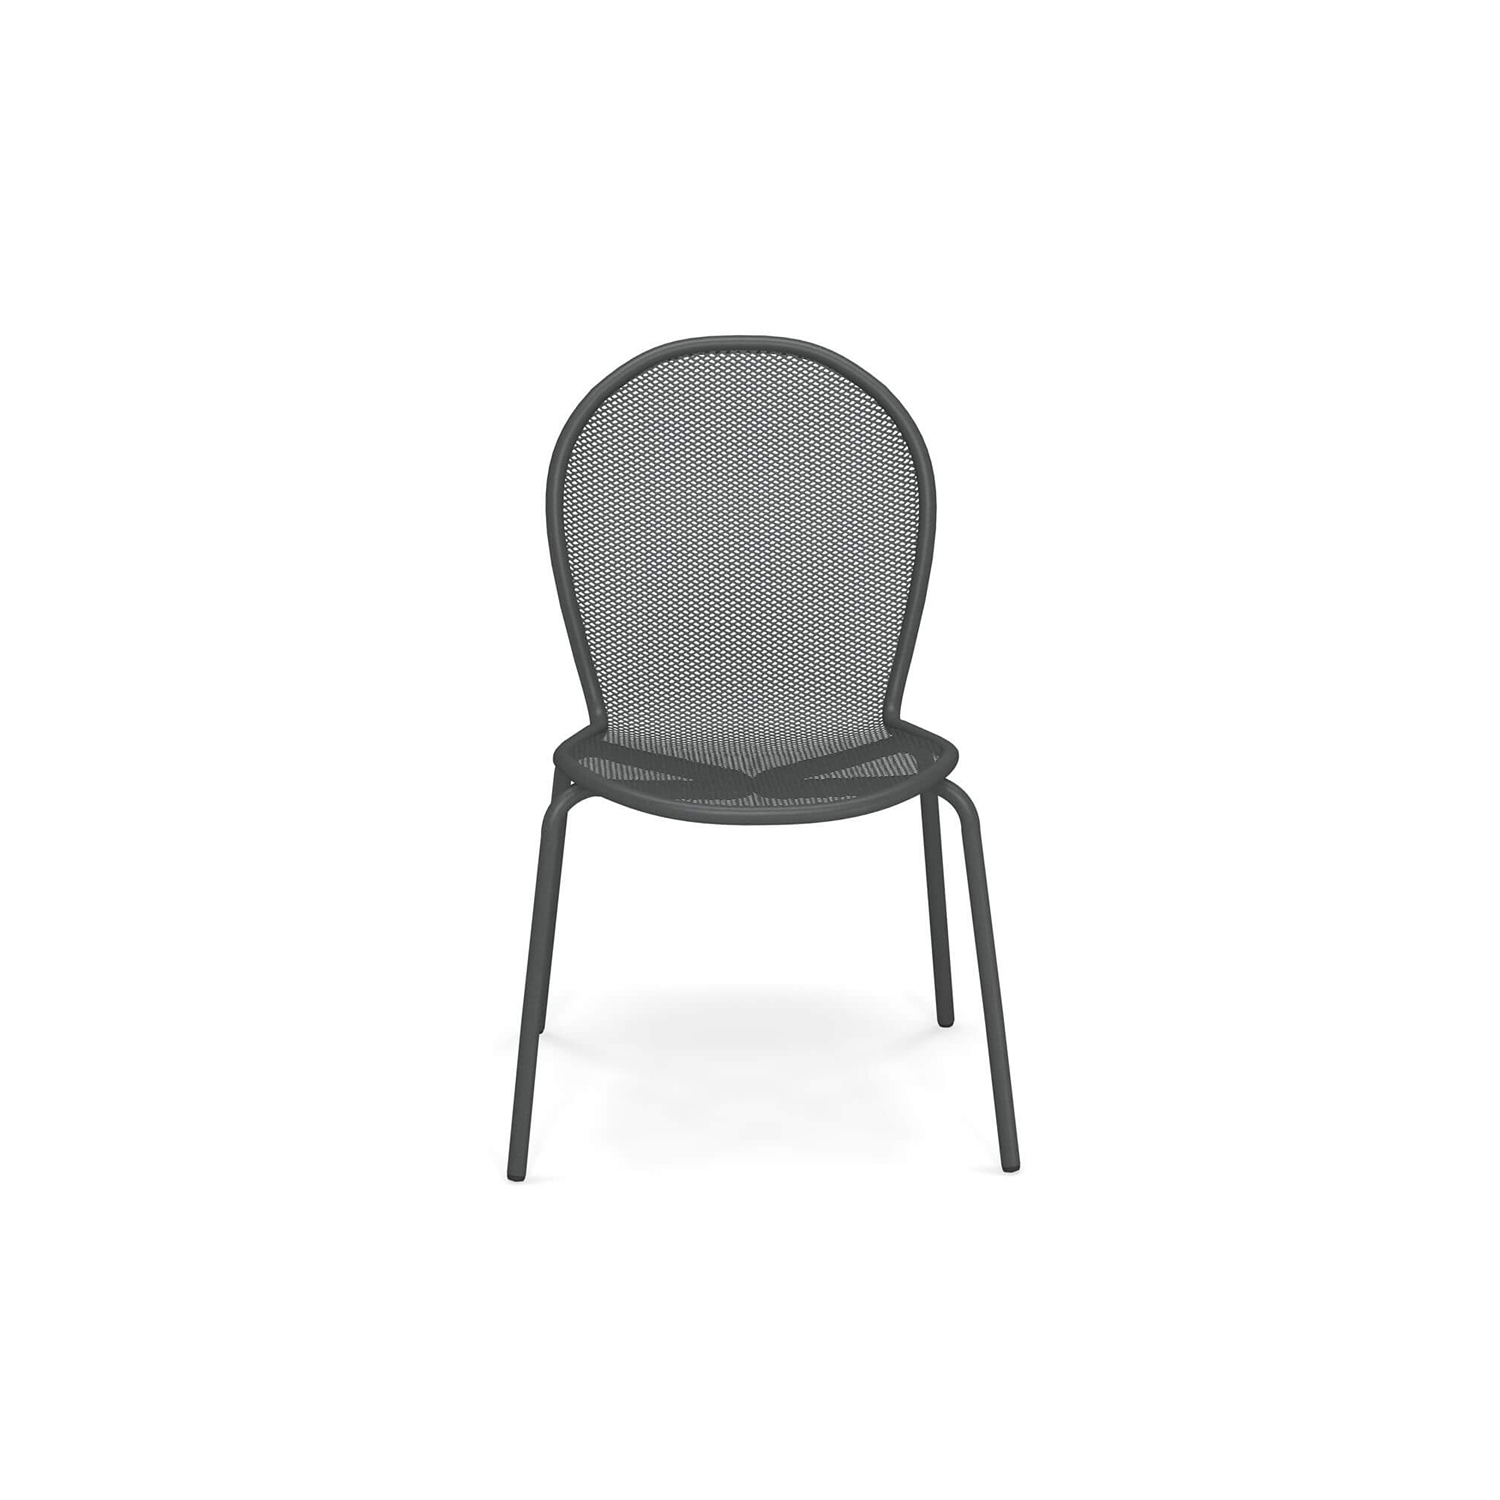 Ronda Chair - Set of 4 - <p>With over two million pieces sold, this chair has long been a landmark world-wide, with easy design, sober and elegant lines.</p> This set of for chairs is made from steel and comes in nine different finishes so you can choose the best finish for your space. These are outdoor chairs. Please enquire for more information  | Matter of Stuff